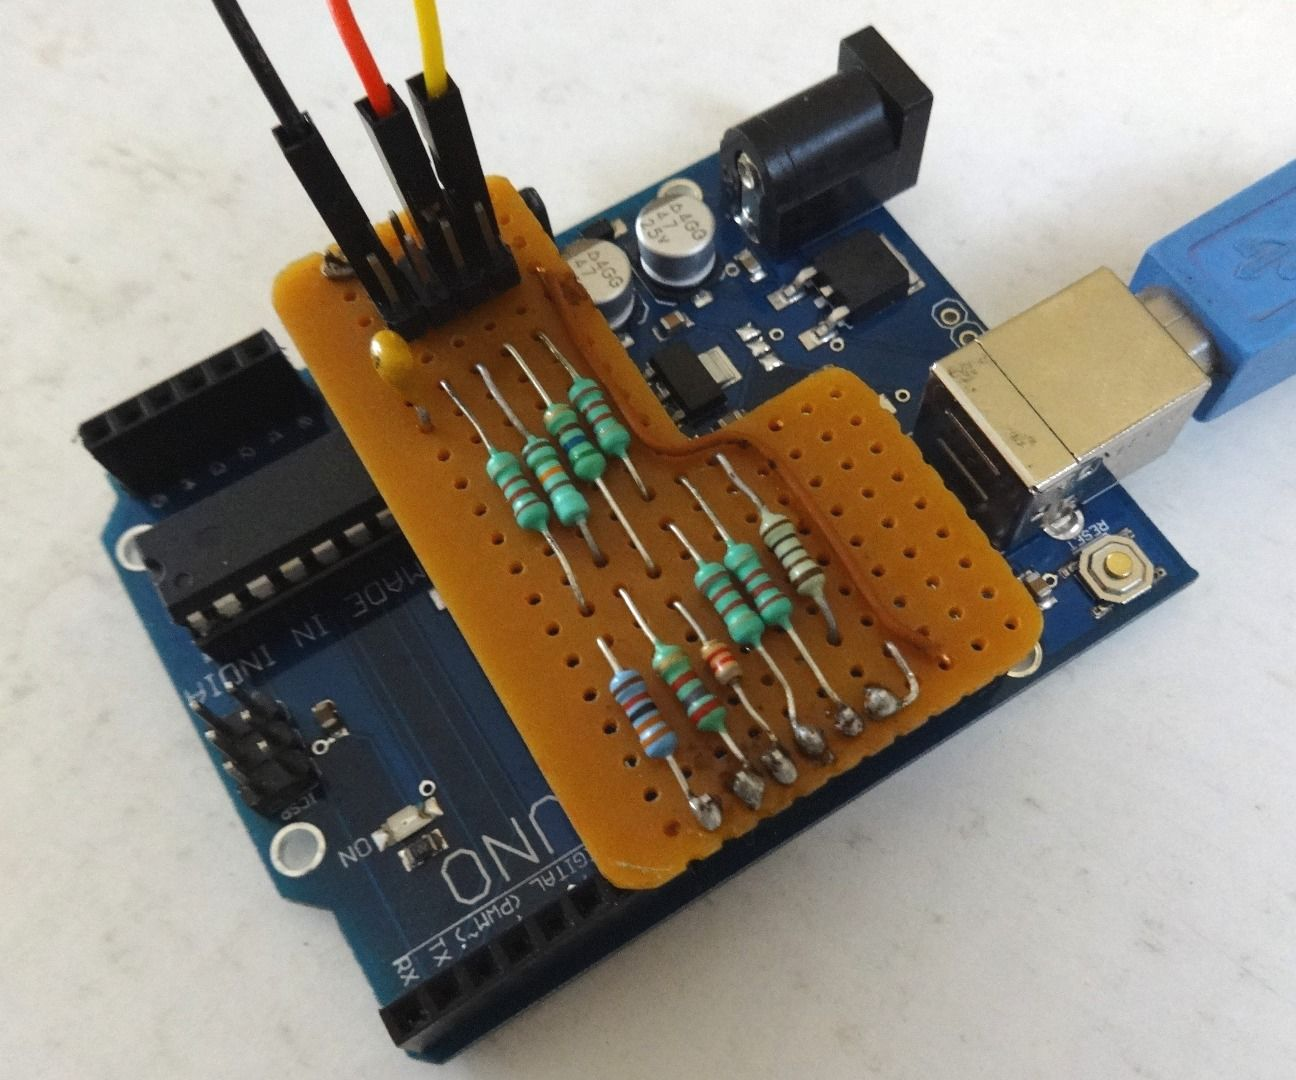 10 Resistor Arduino Waveform Generator: 8 Steps (with Pictures)